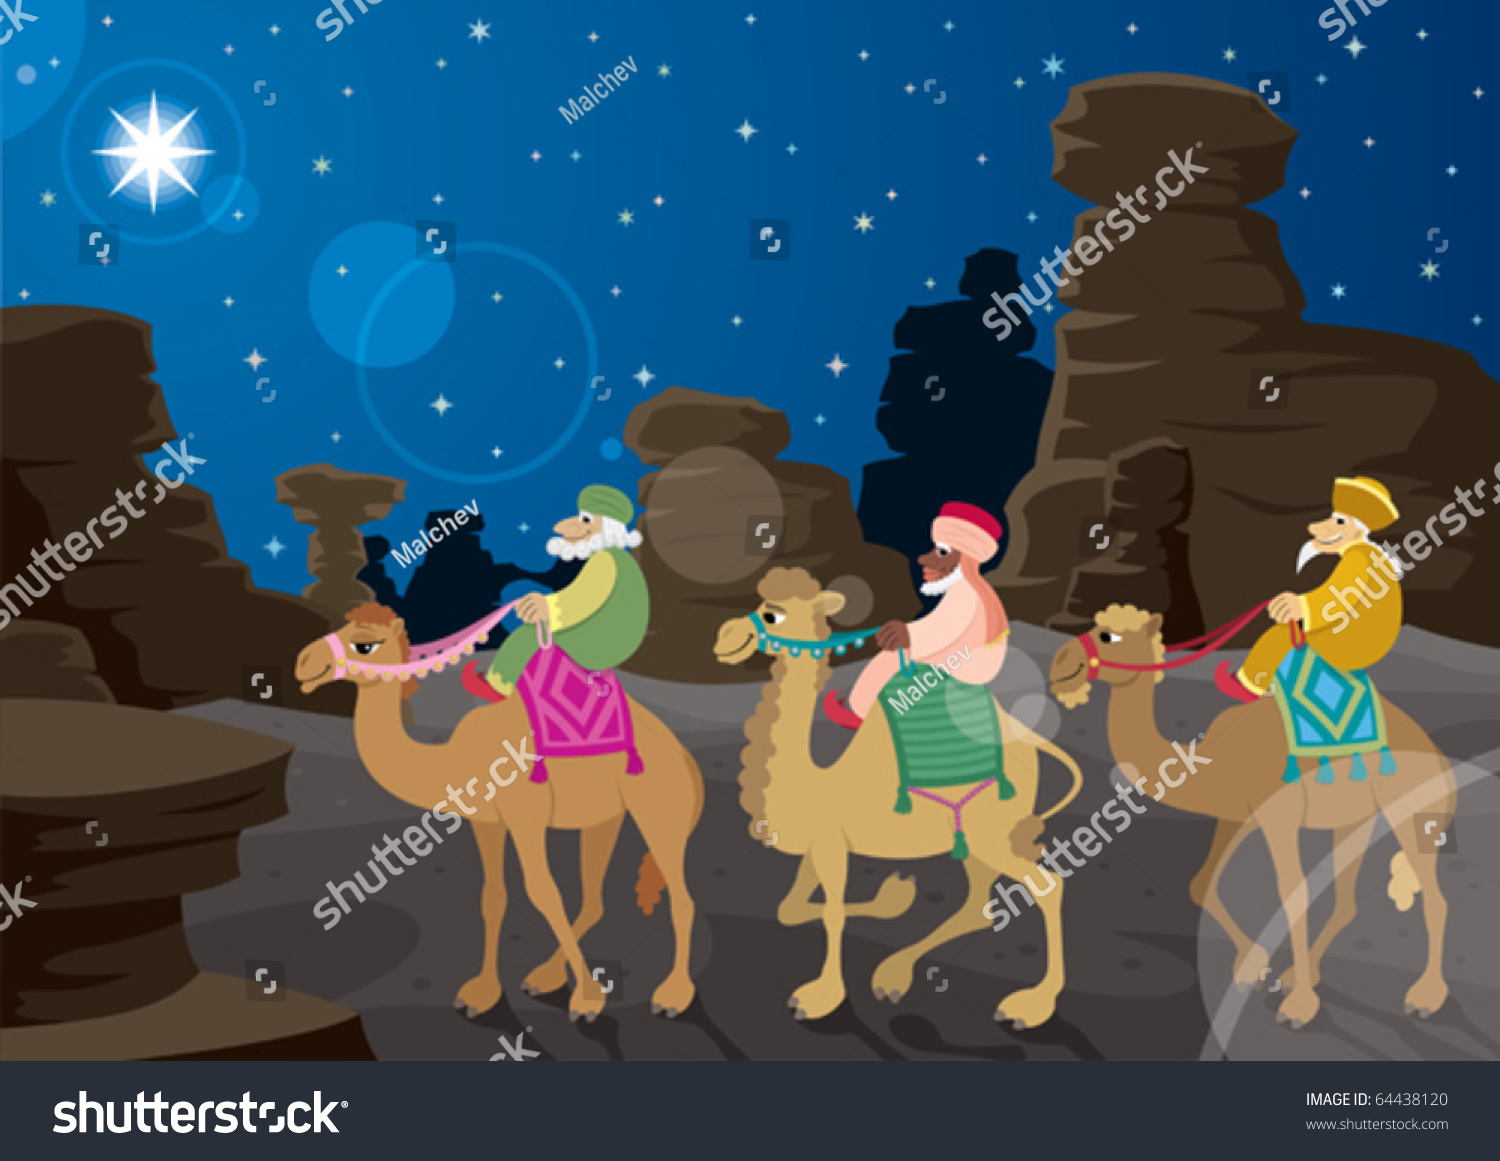 The three wise men on their camels following the star of bethlehem